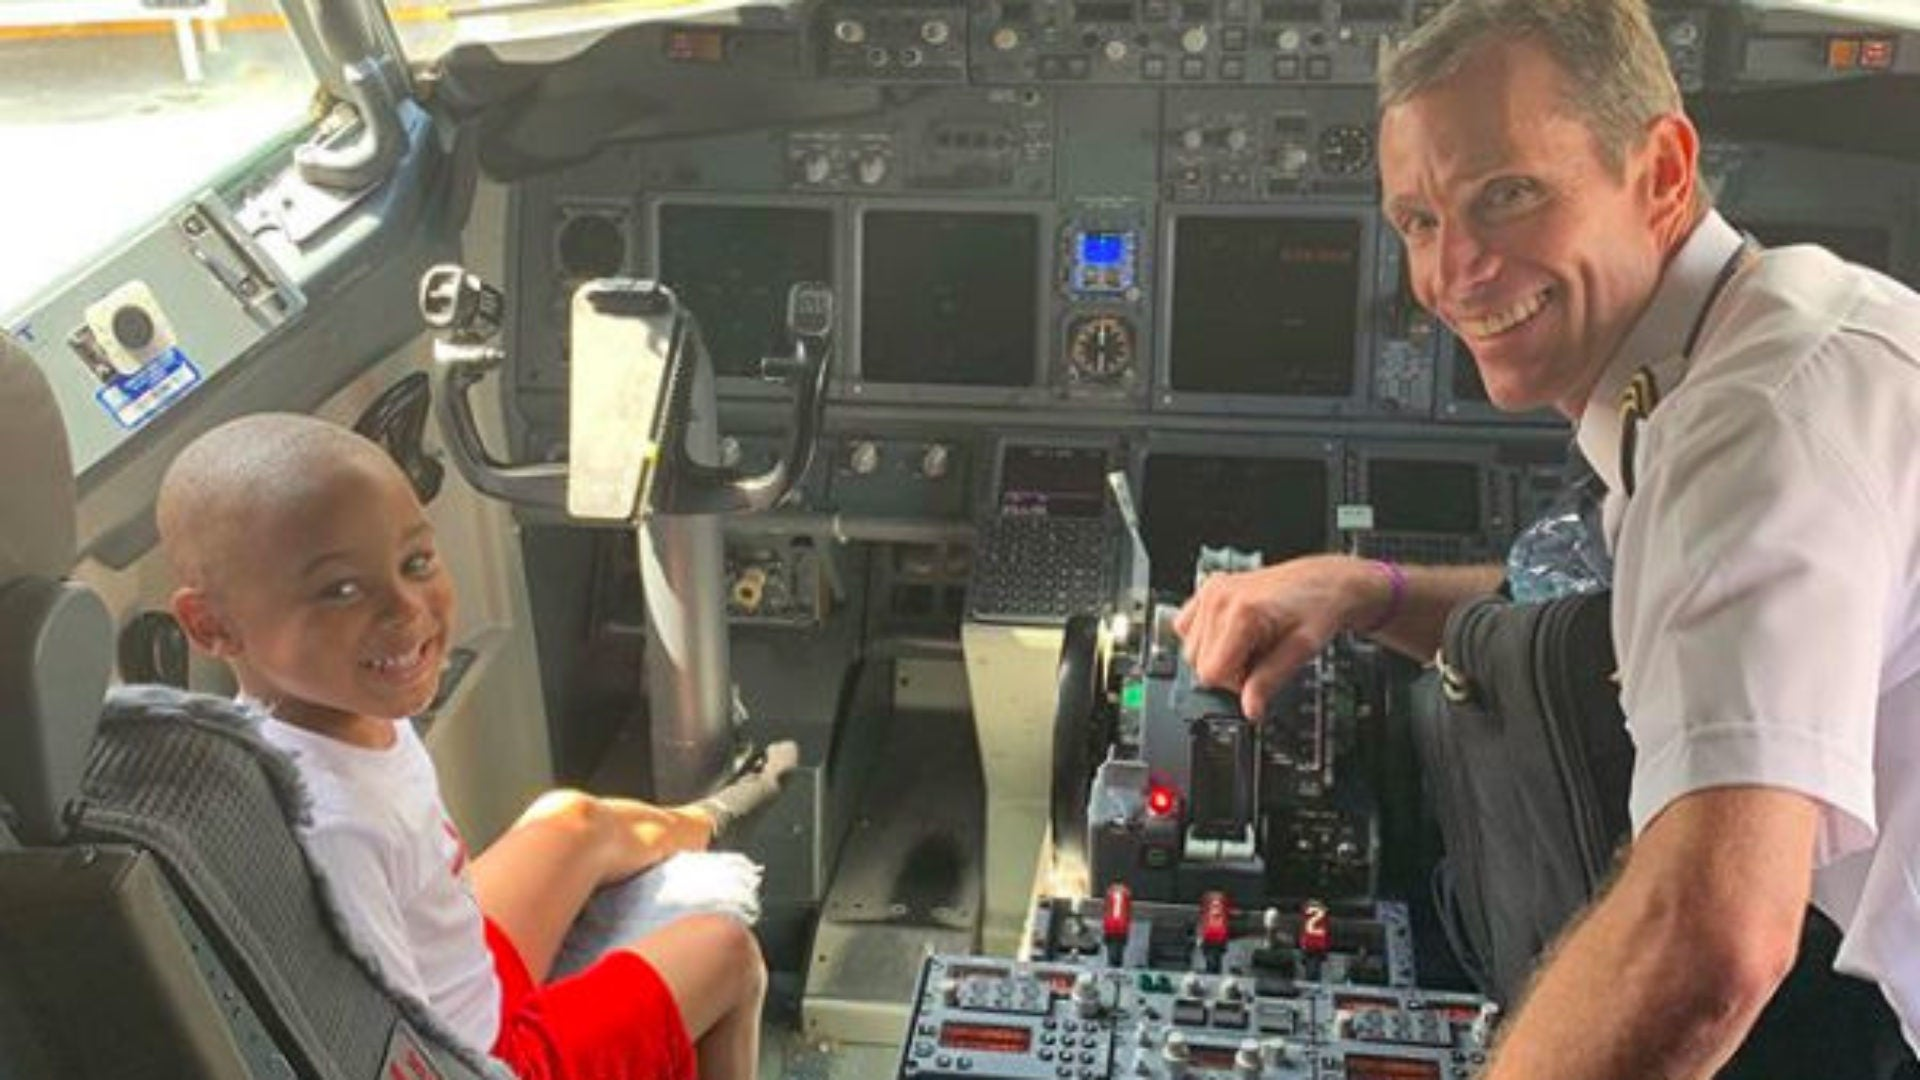 Adorable 4-Year-Old Gathers Plane Passenger Who Put Her 'Stinky Feet' On His Armrest